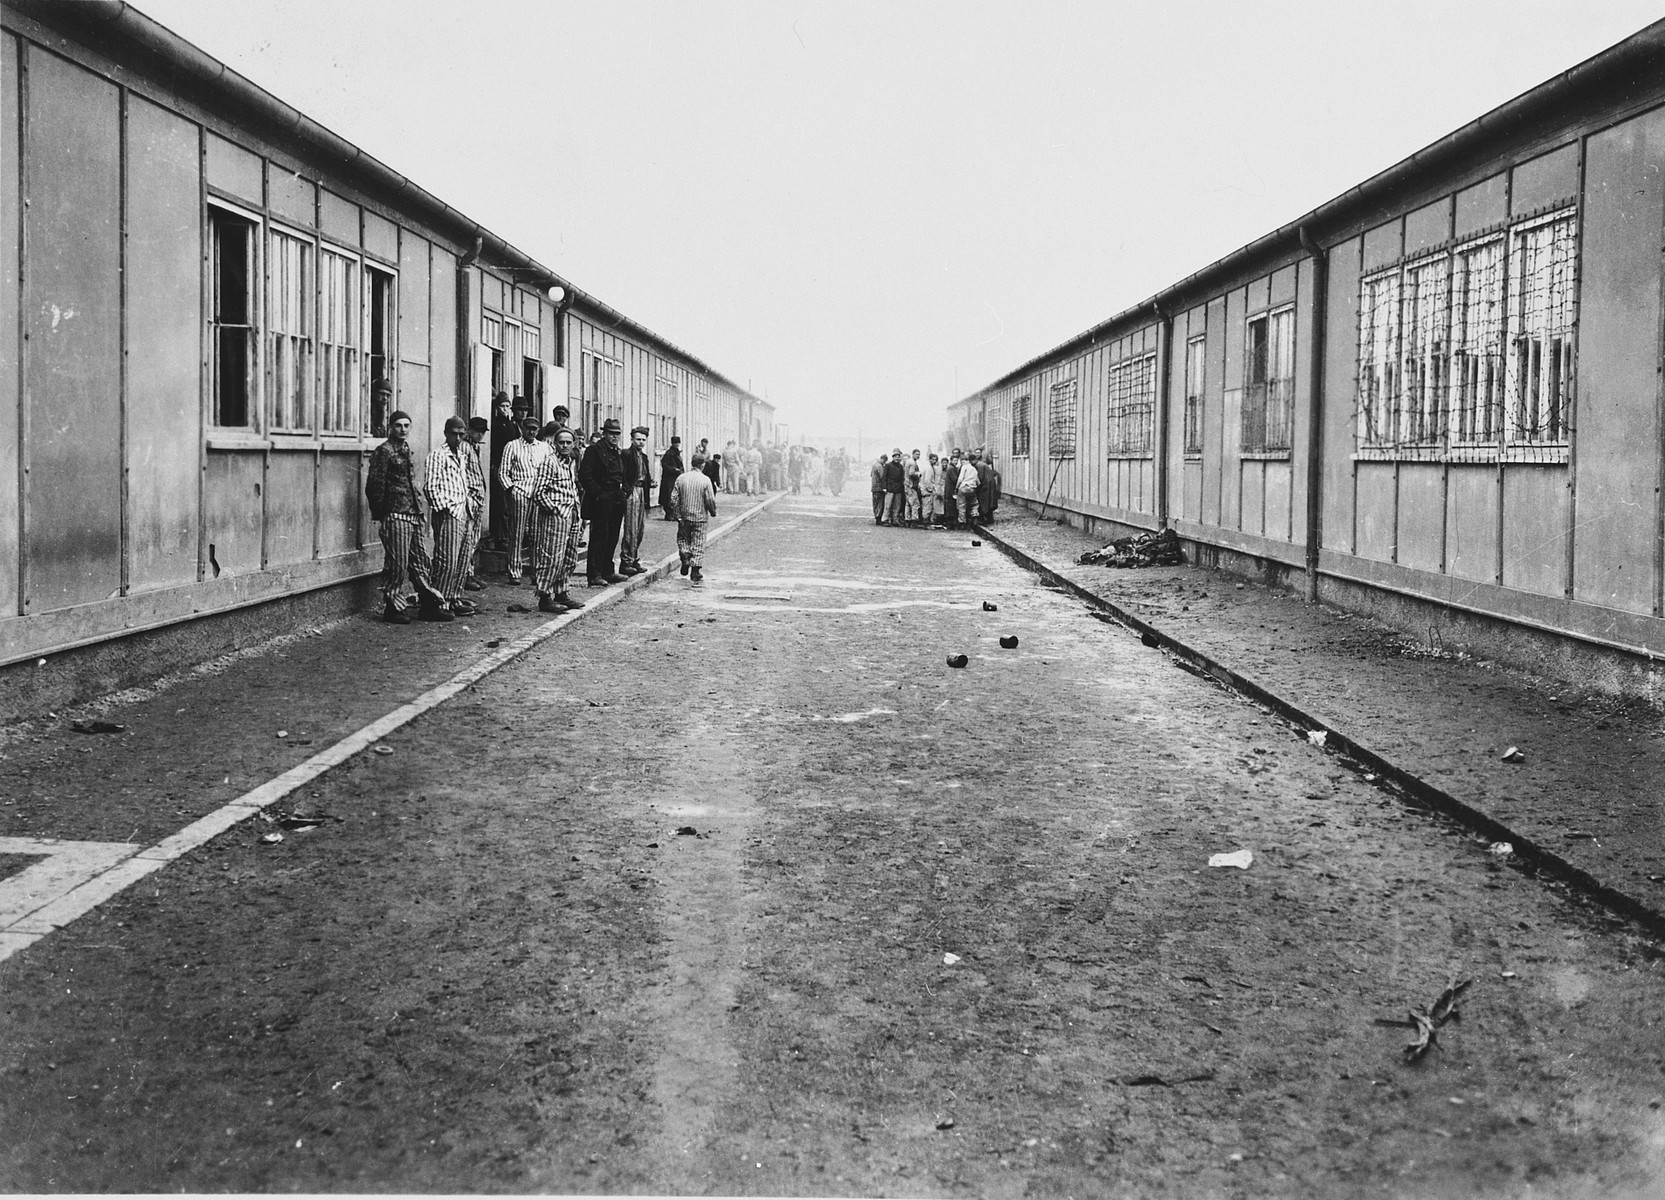 Survivors congregate on a road of the Dachau concentration camp flanked by barracks on either side.